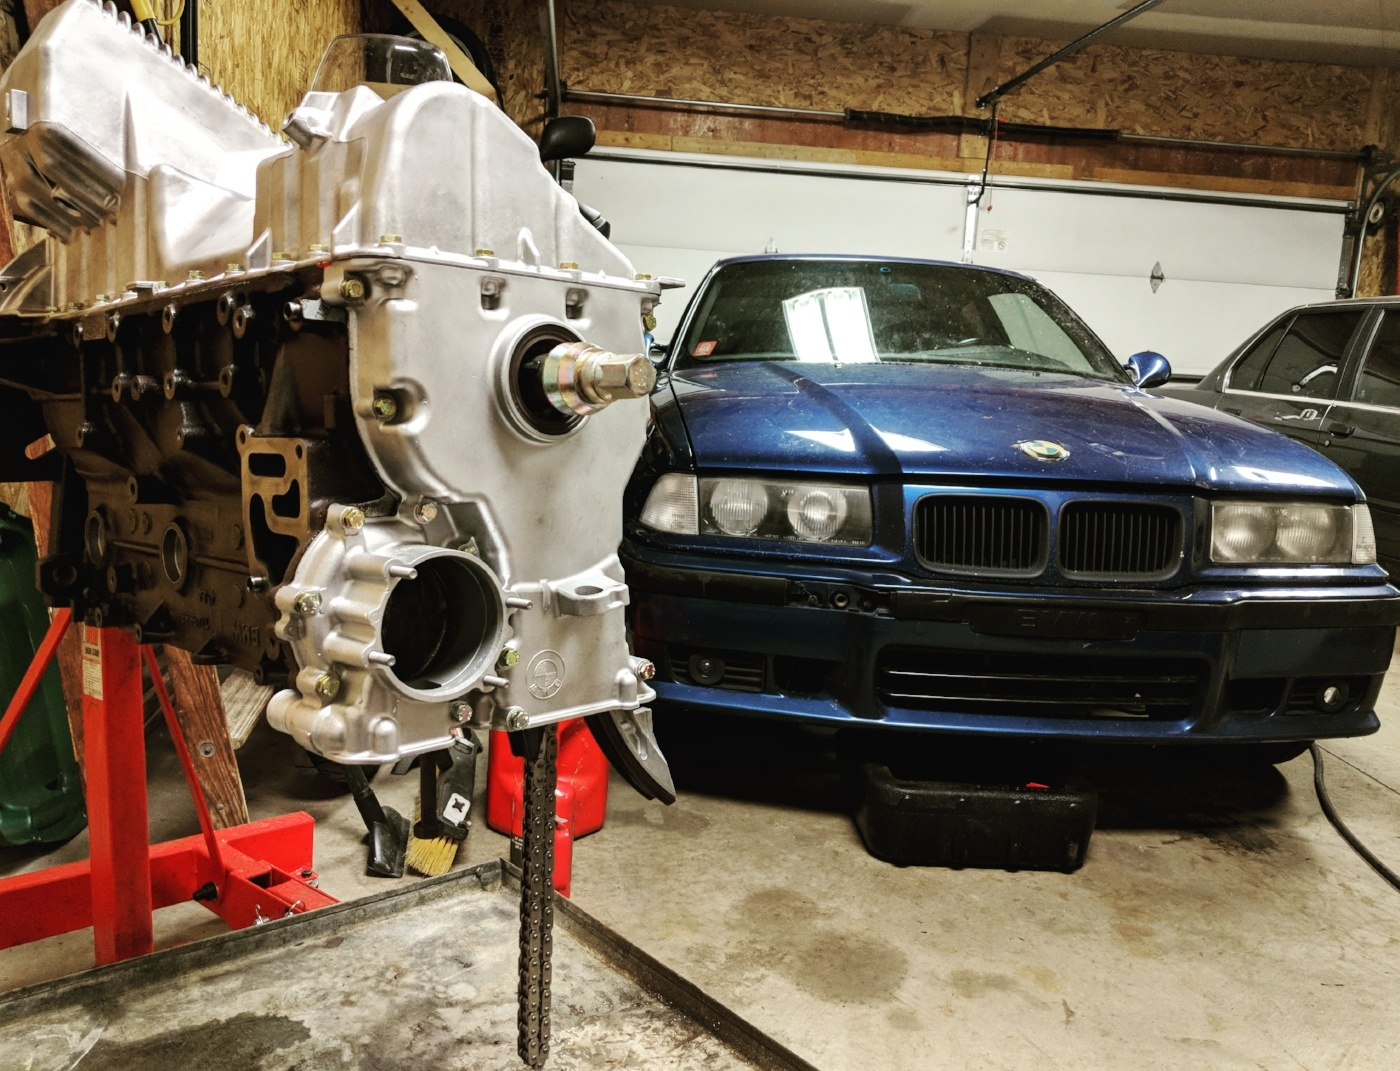 bmw-e36-caged-rally-car-motor-rebuild